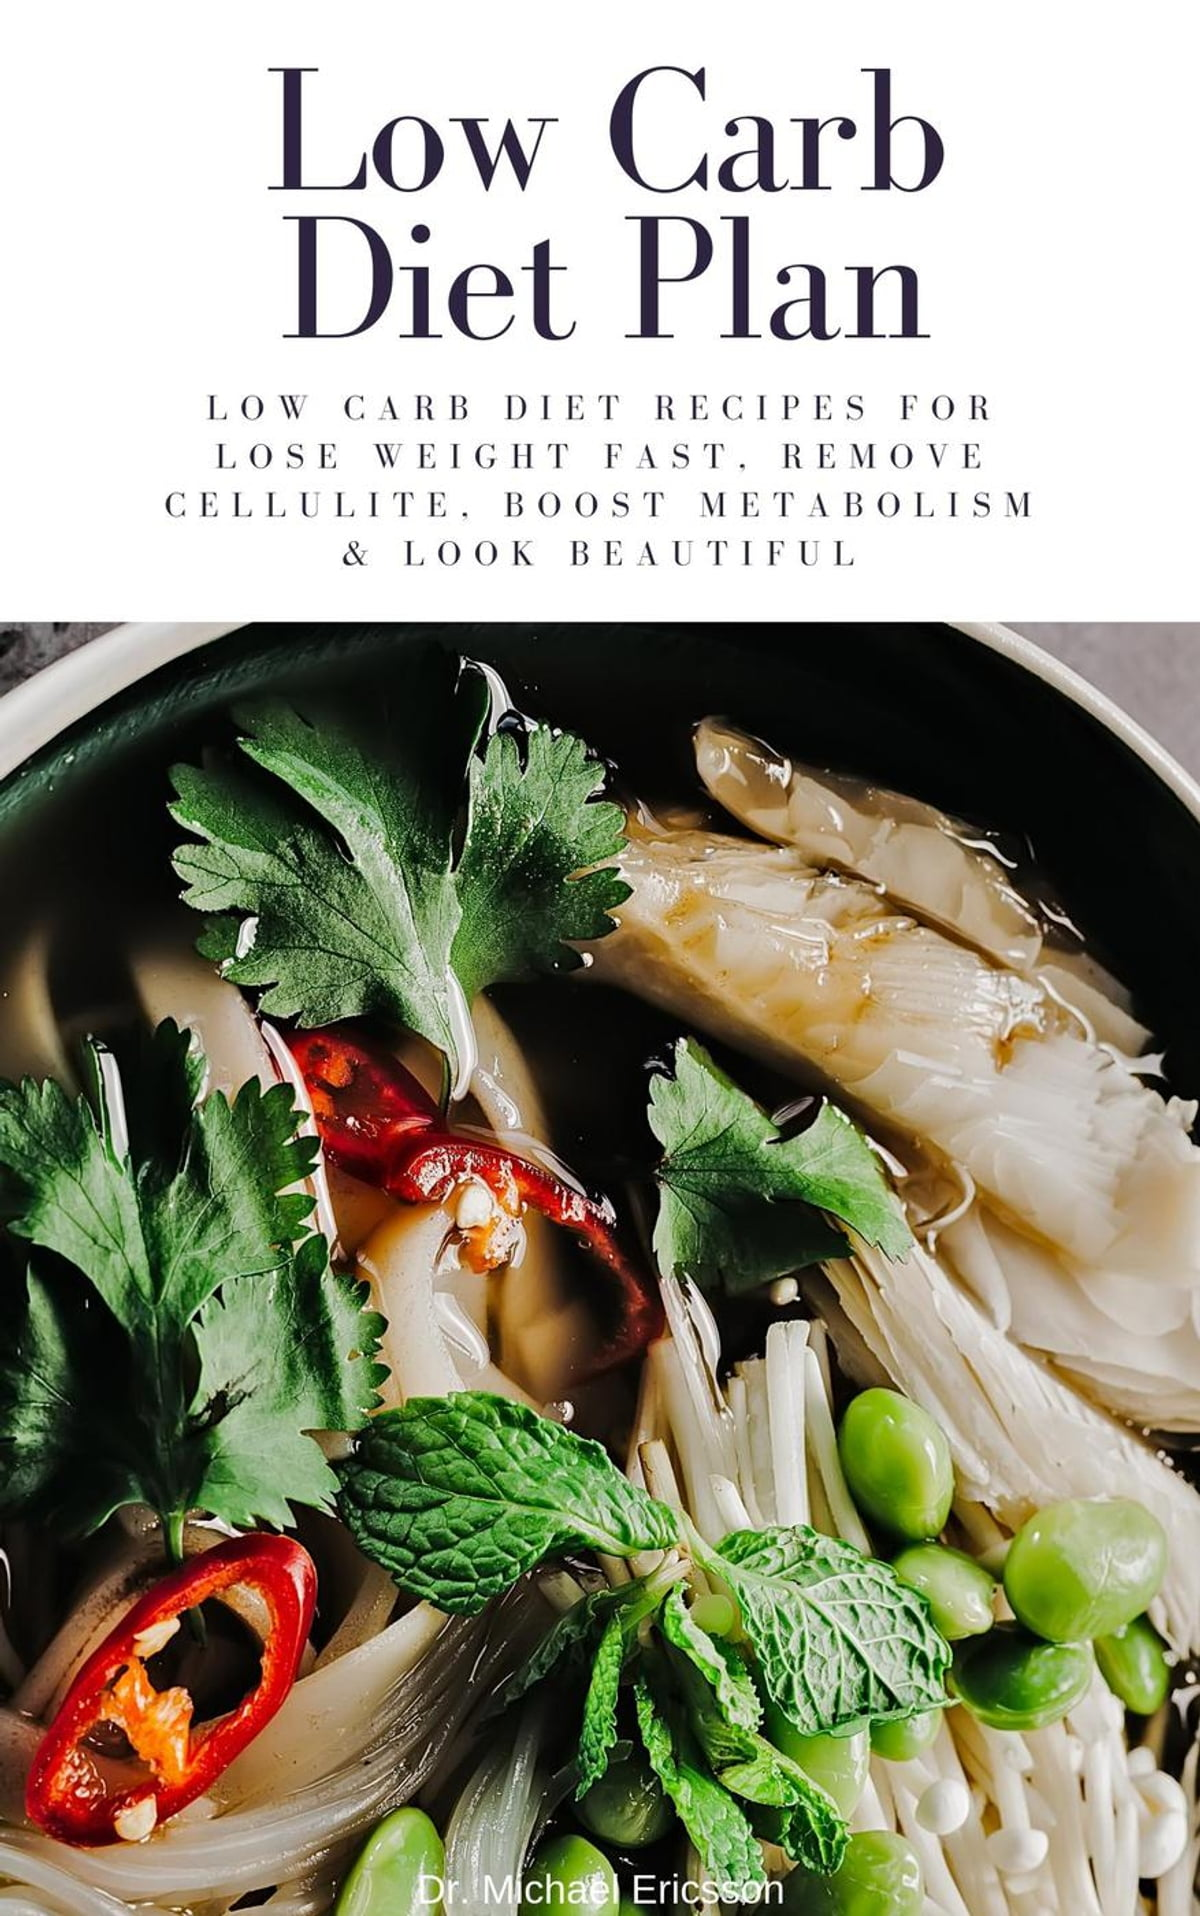 Low Carb Diet Plan: Low Carb Diet Recipes For Lose Weight ...